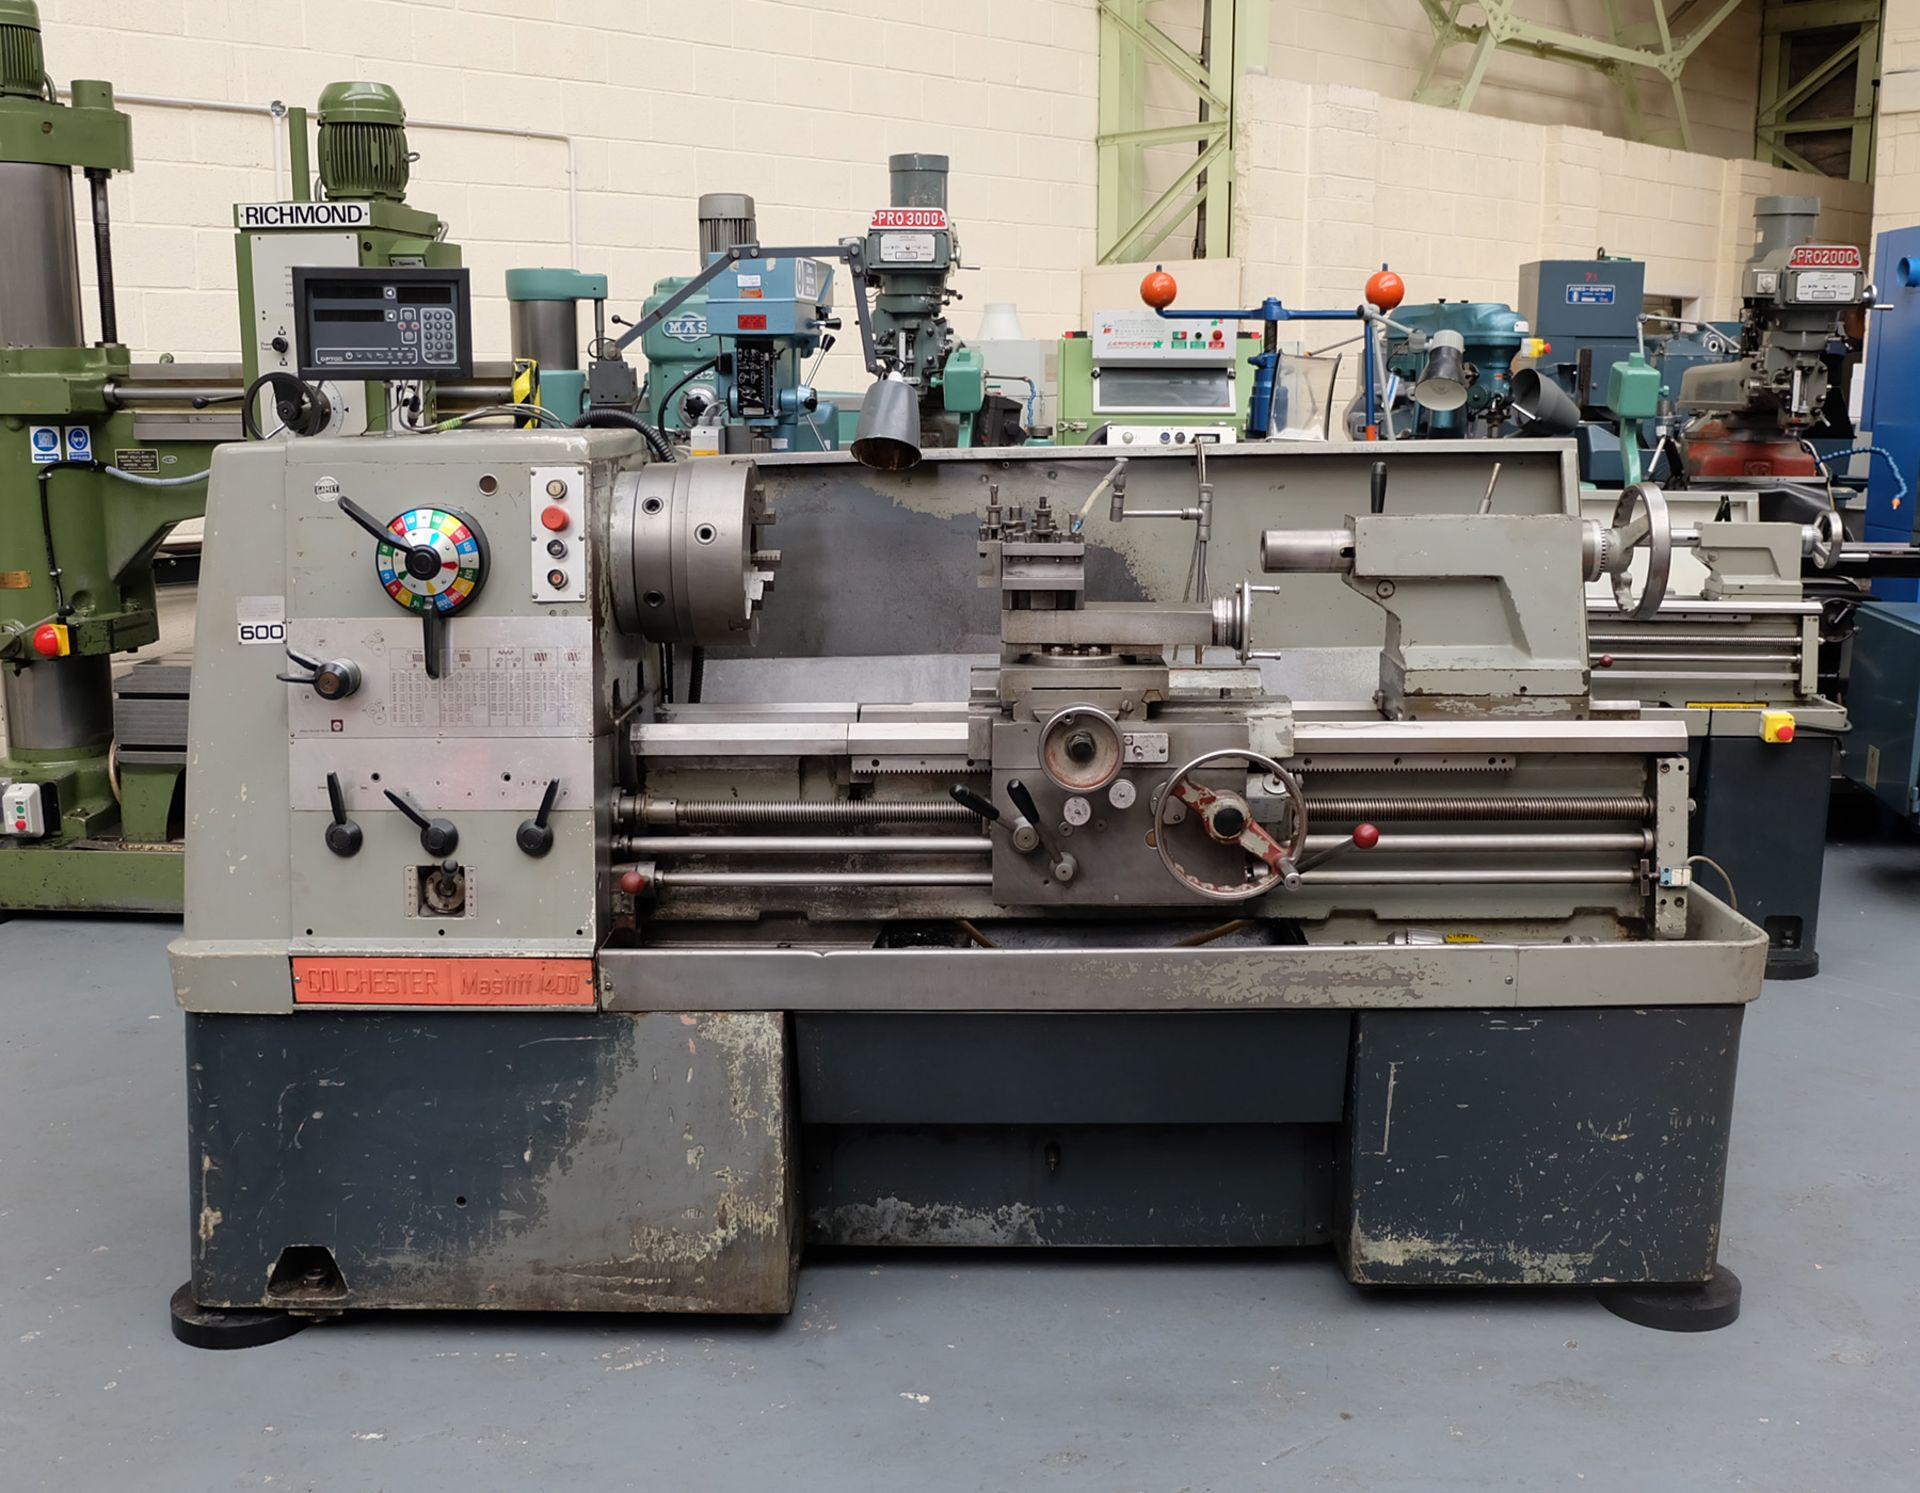 "Colchester Mastiff 1400 Gap Bed Centre Lathe. 21"" Swing Over Bed. 40"" Distance Between Centres."